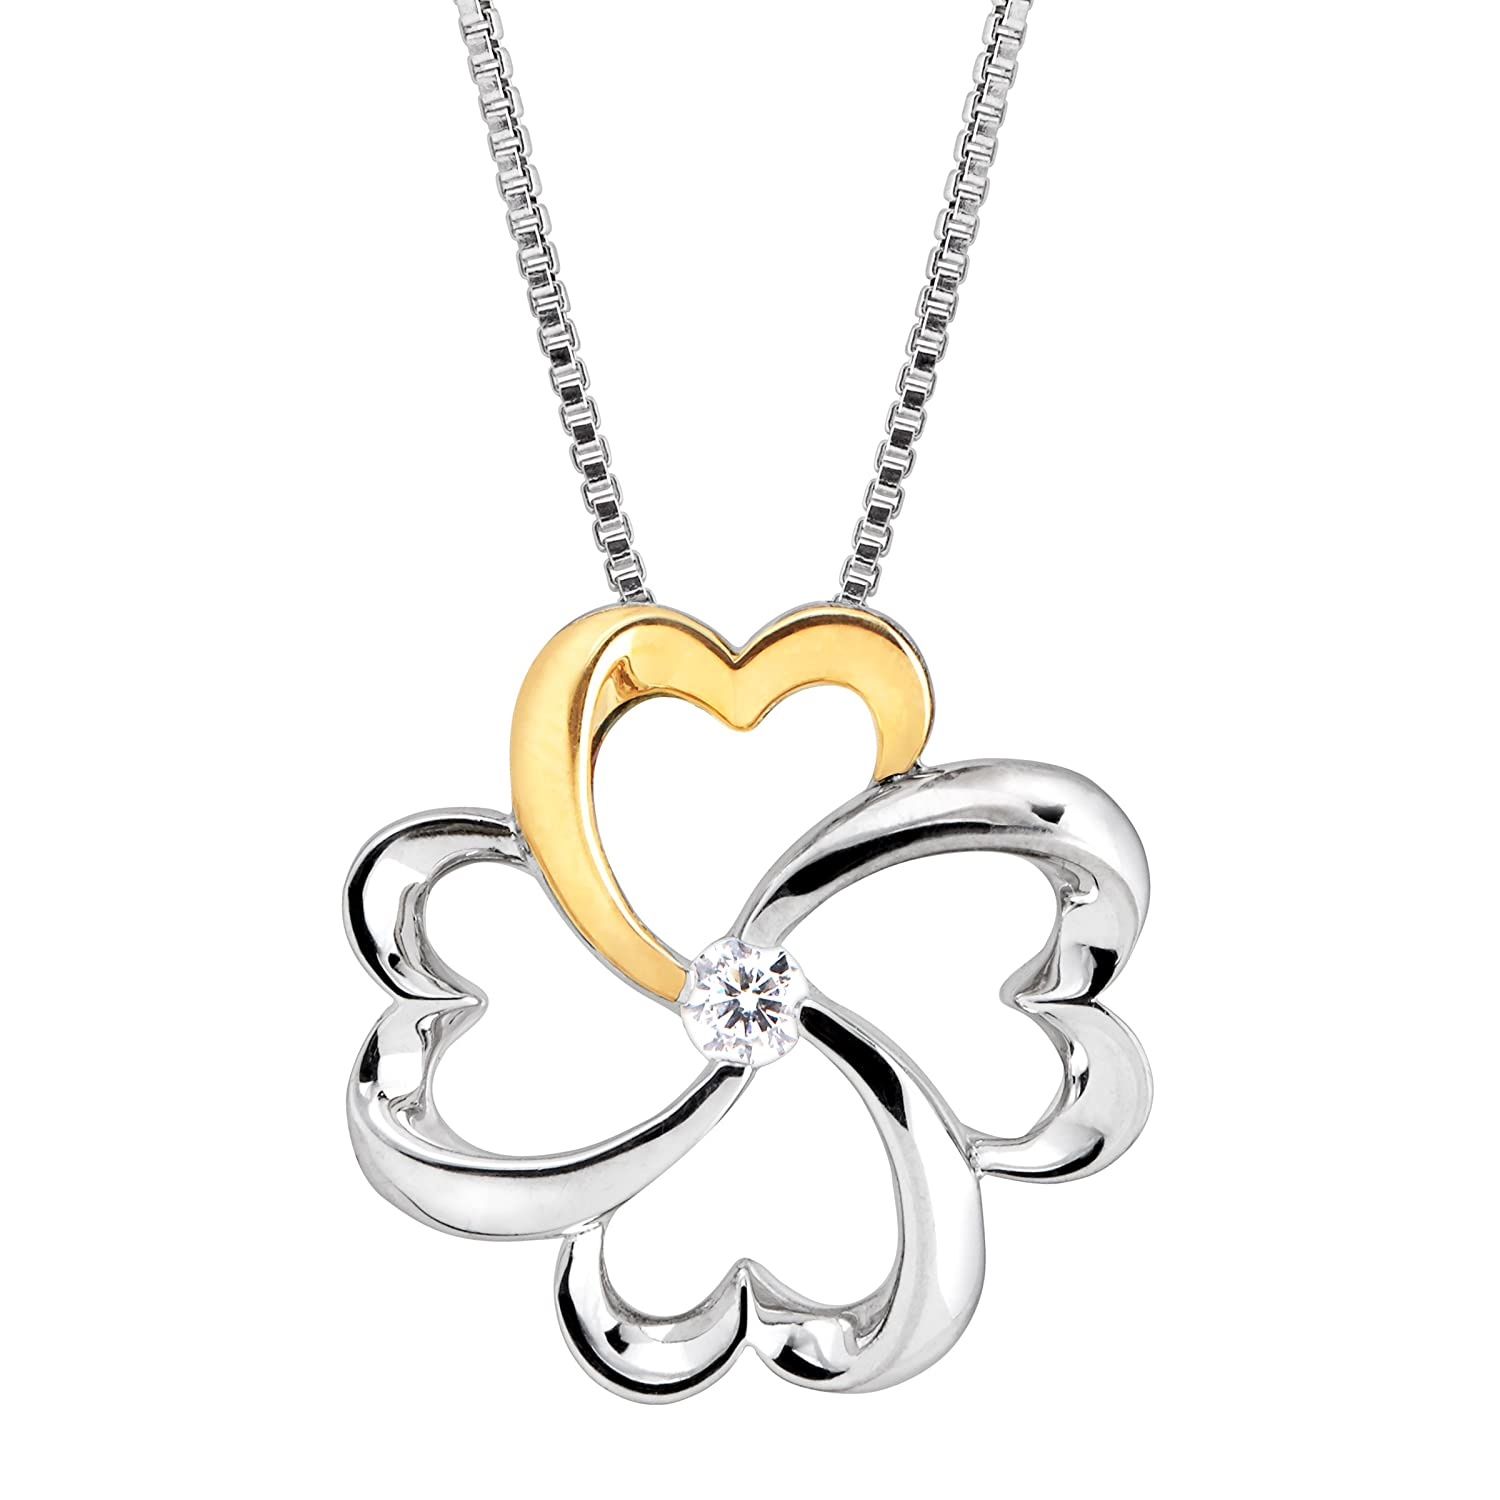 1/10 ct Diamond Clover Pendant Necklace in Sterling Silver & 14K Gold